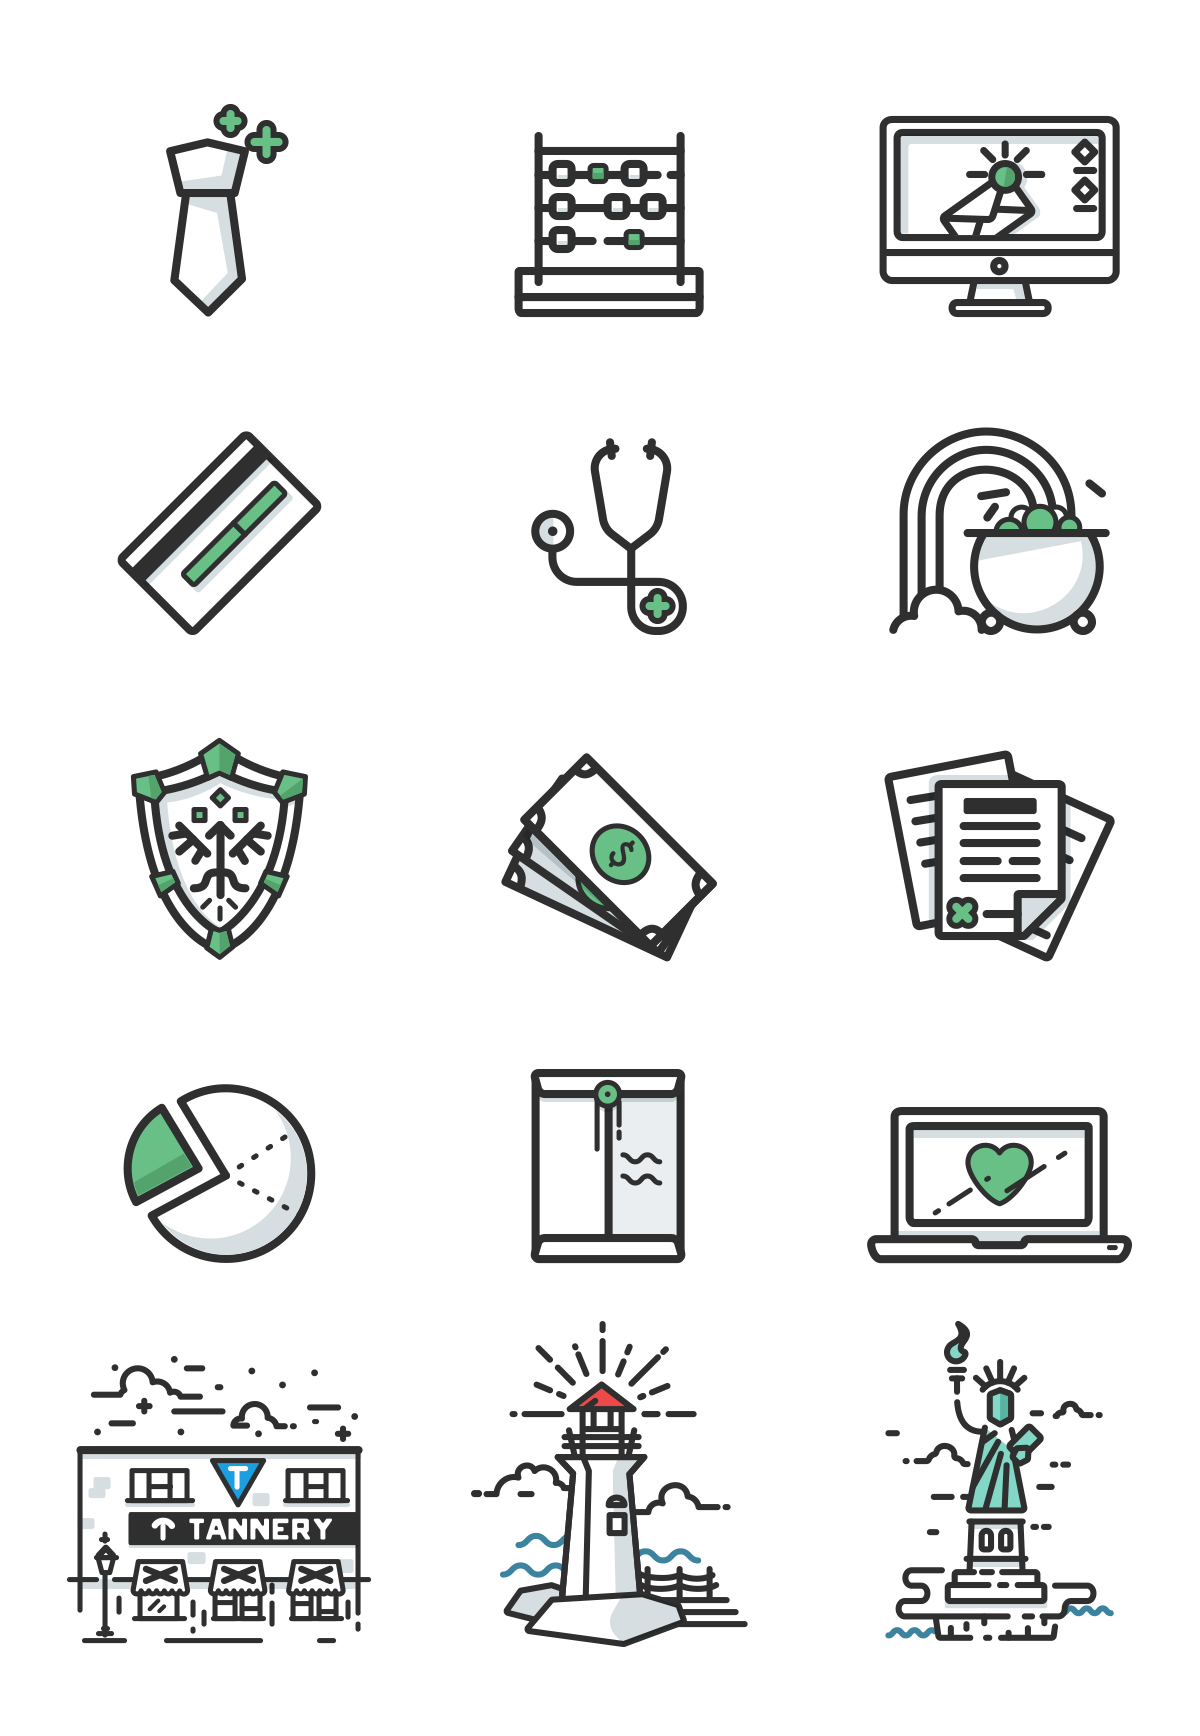 wagepoint-icons.png